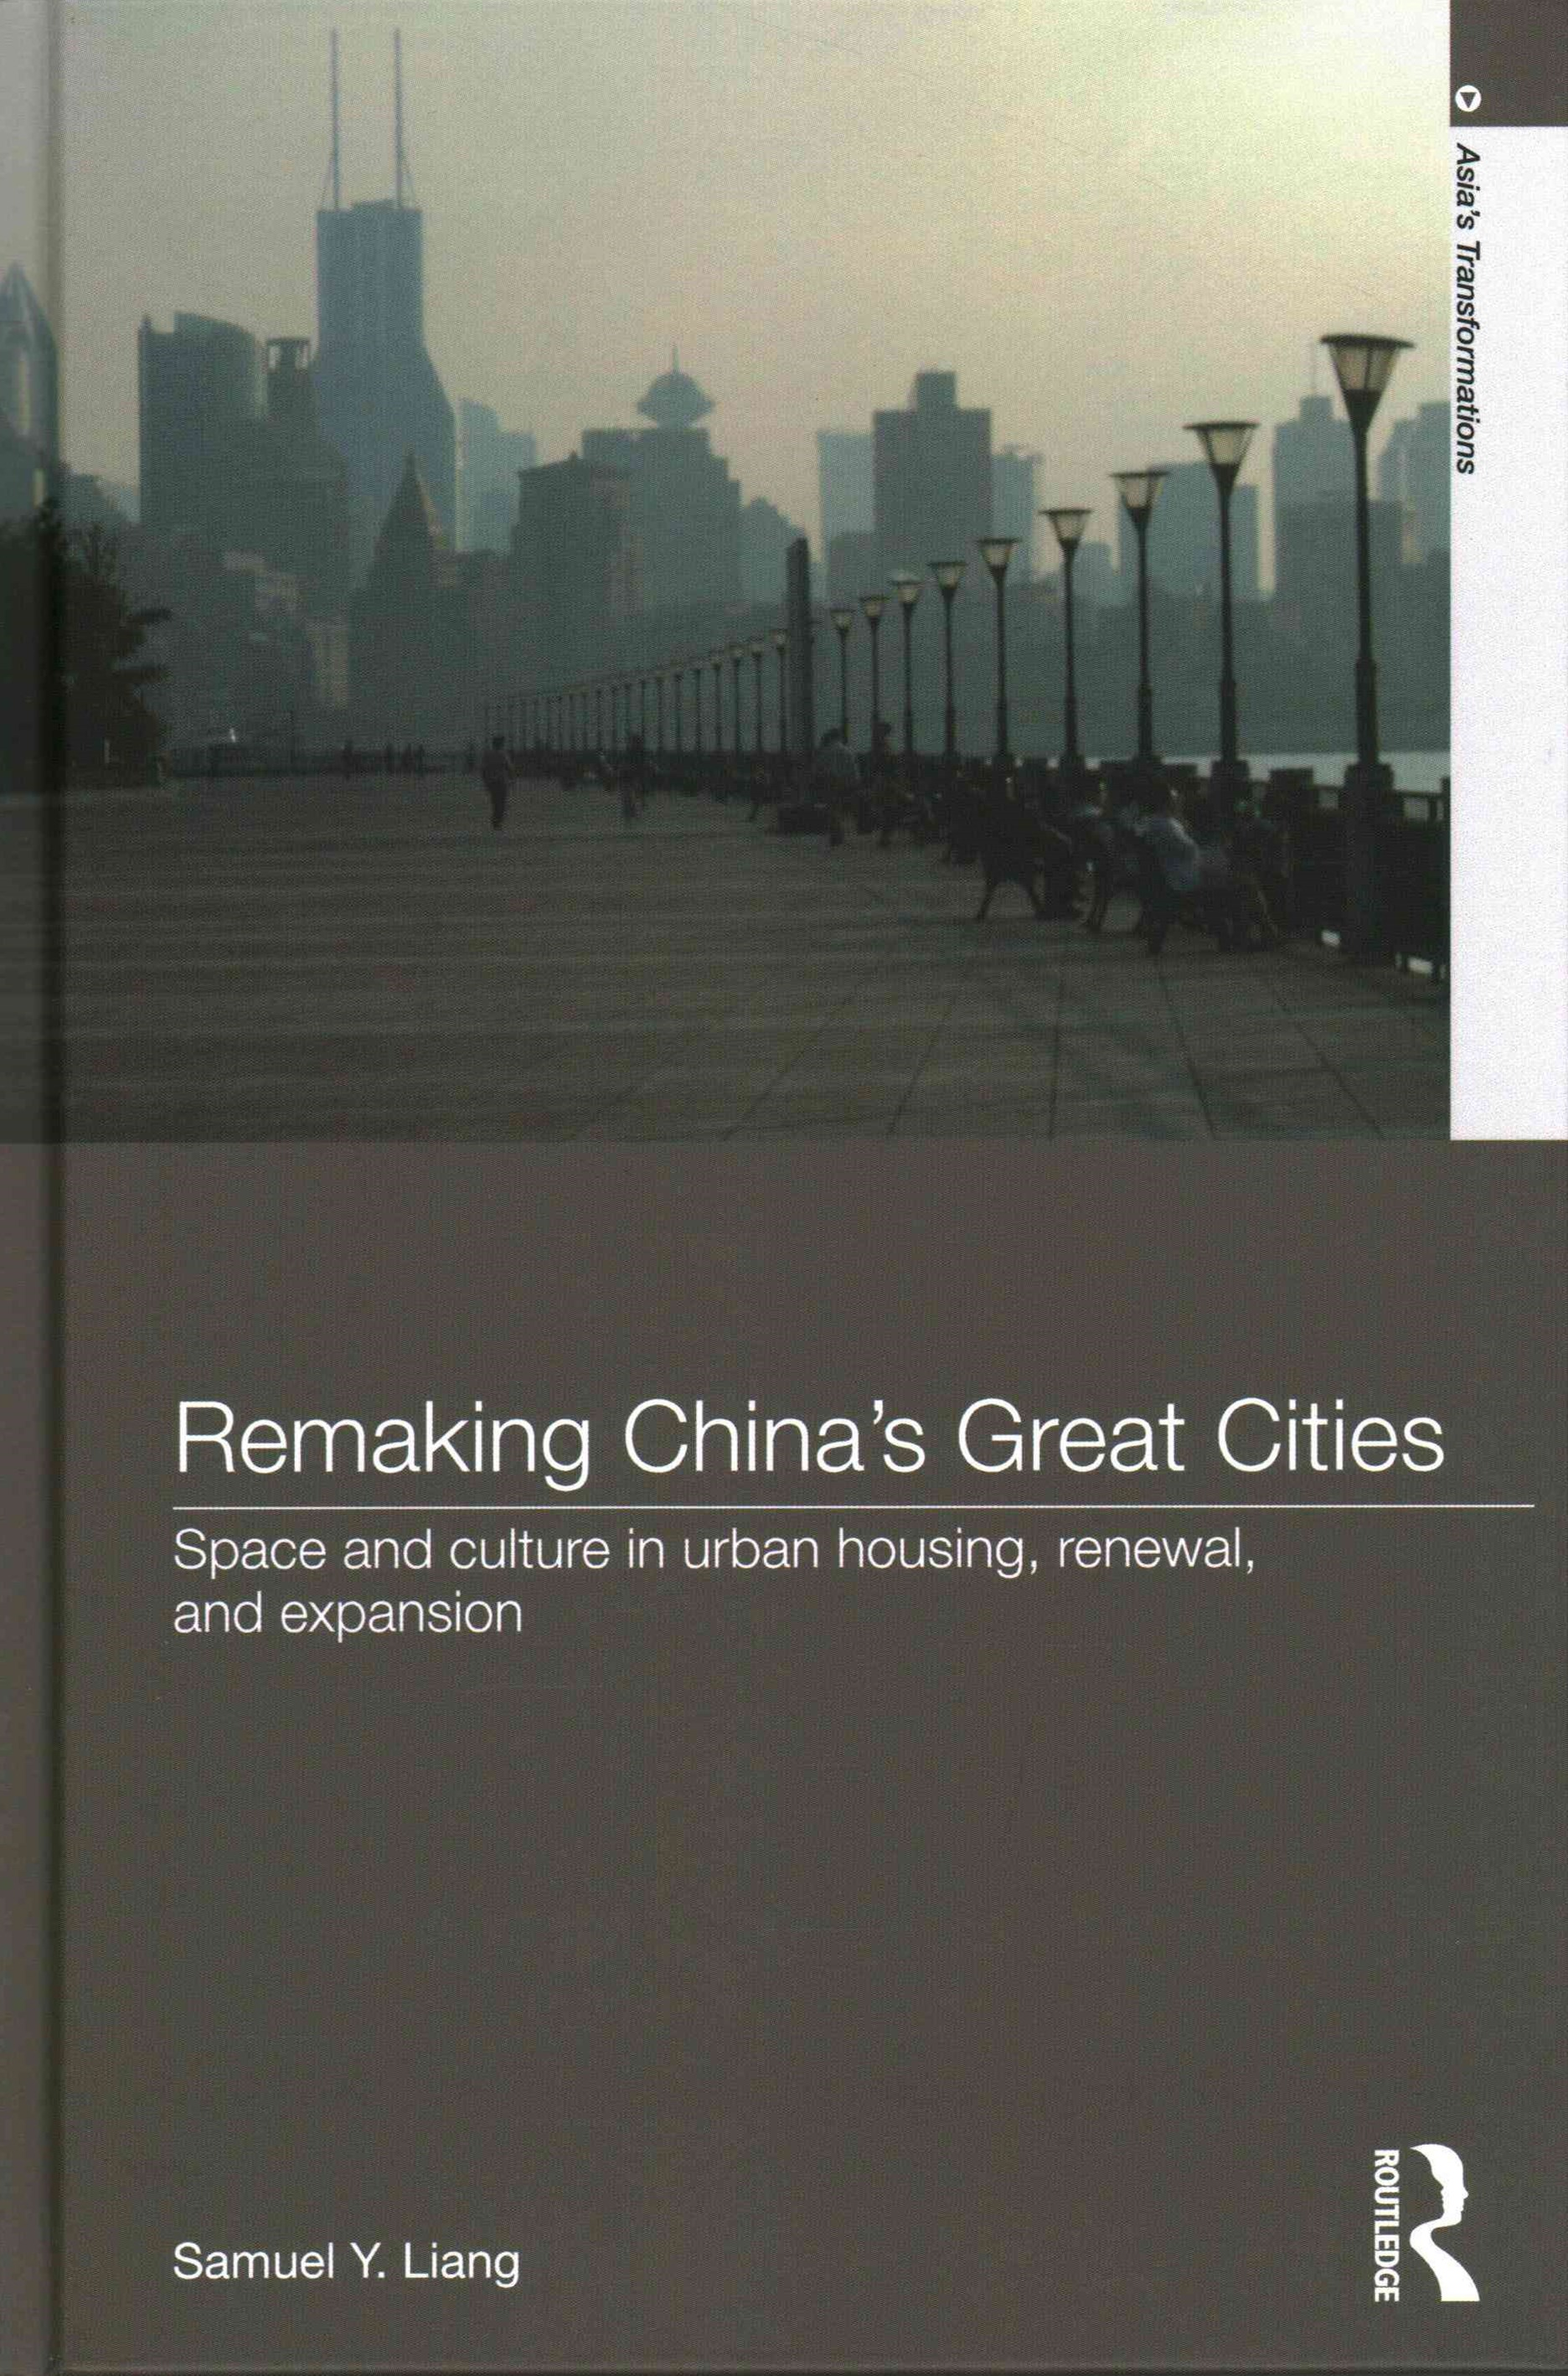 Remaking China's Great Cities